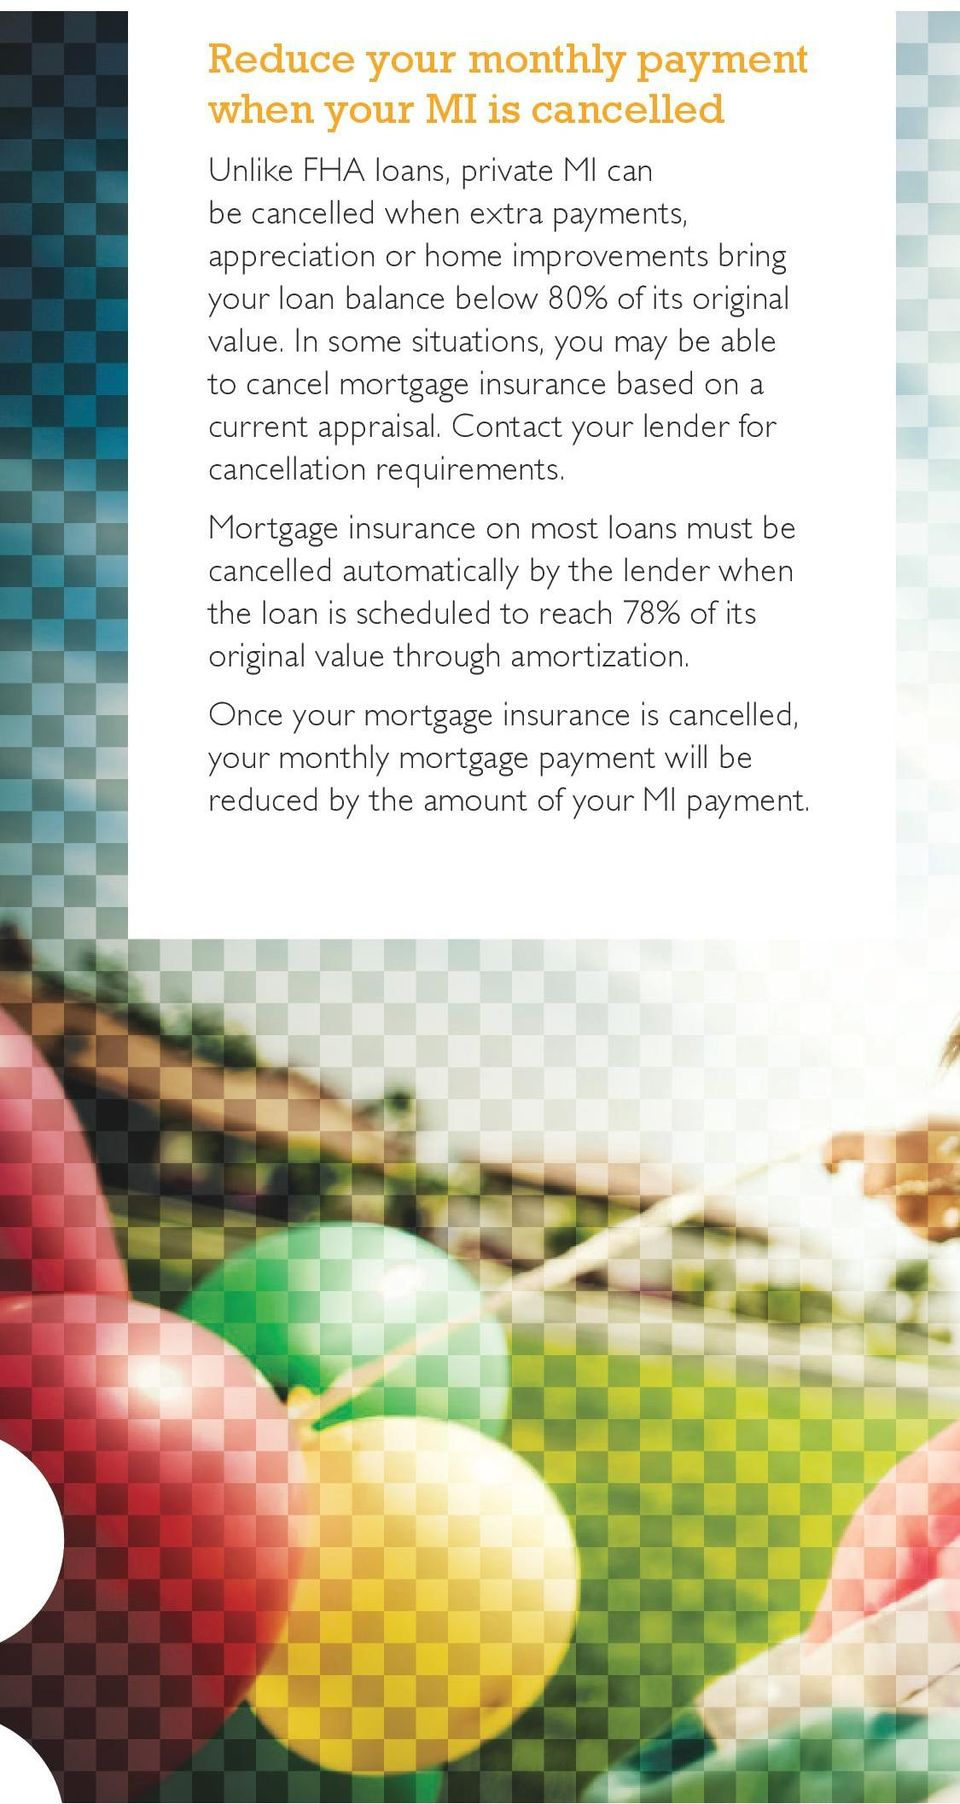 Contact your lender for cancellation requirements.